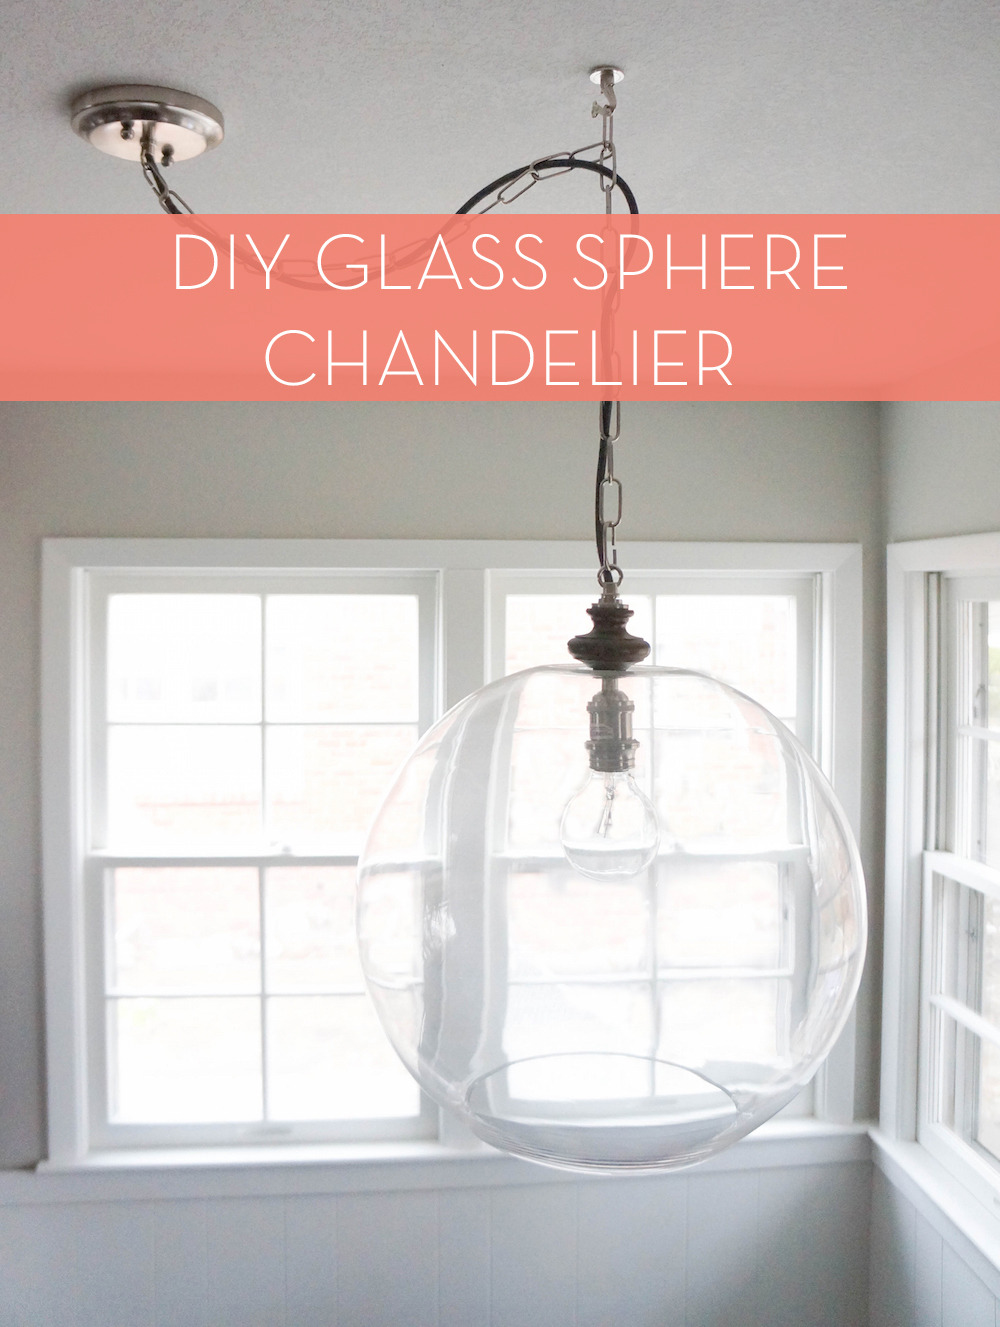 Glass Bowl Light Fixture After 4 with Title